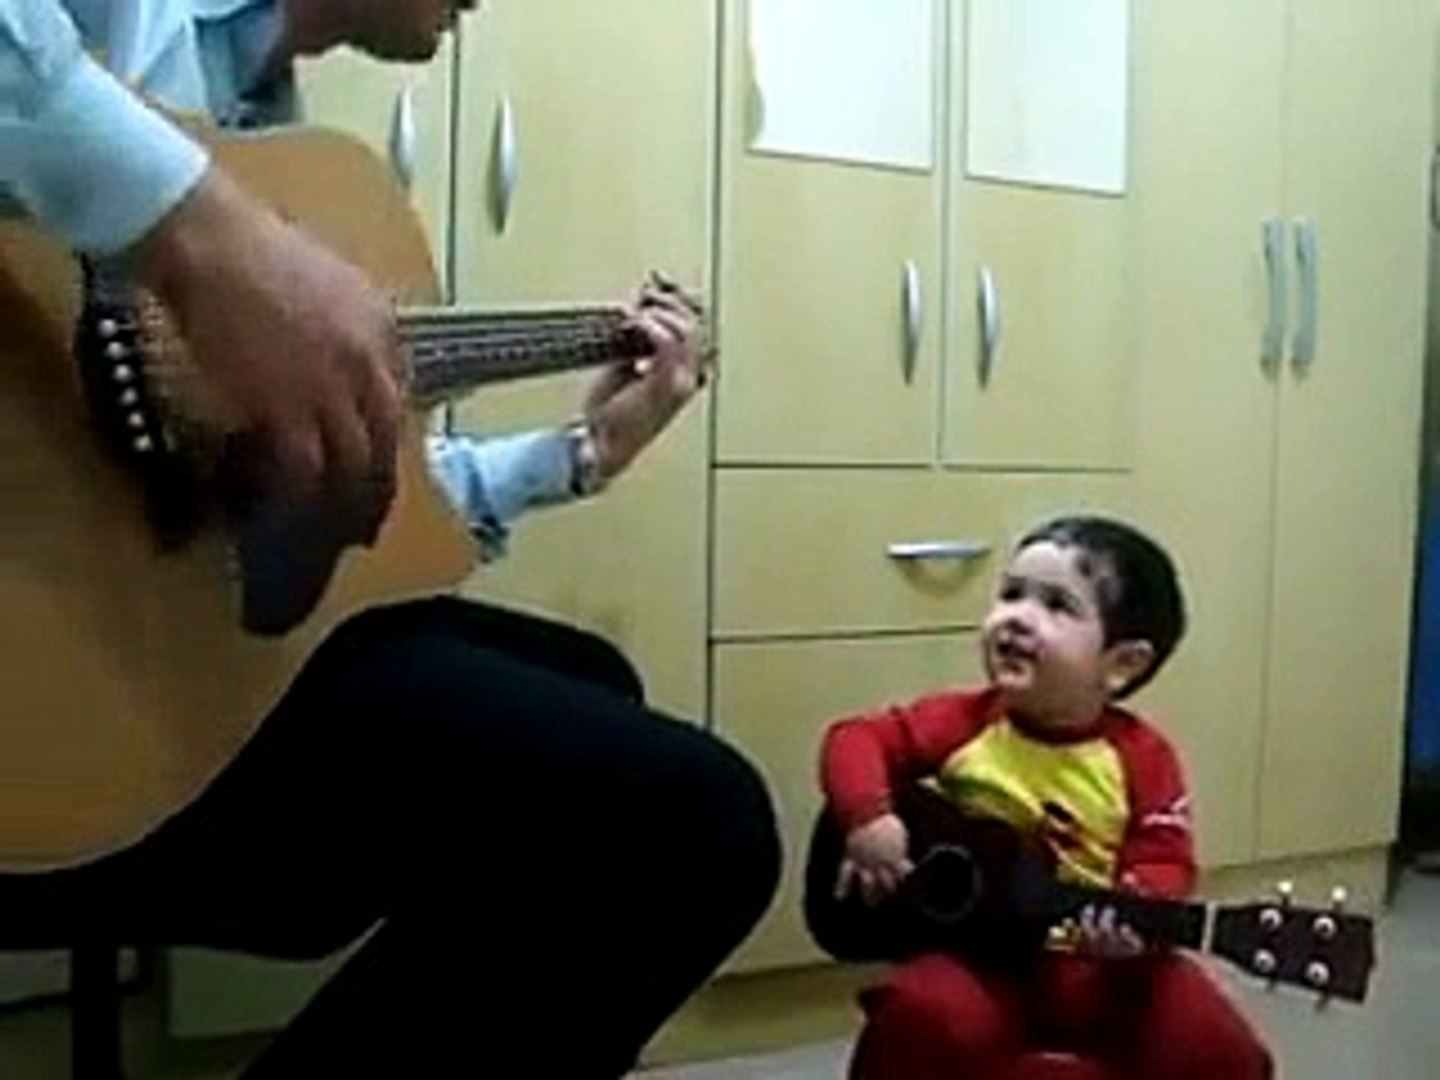 Amazing! Young Kid playing guitar